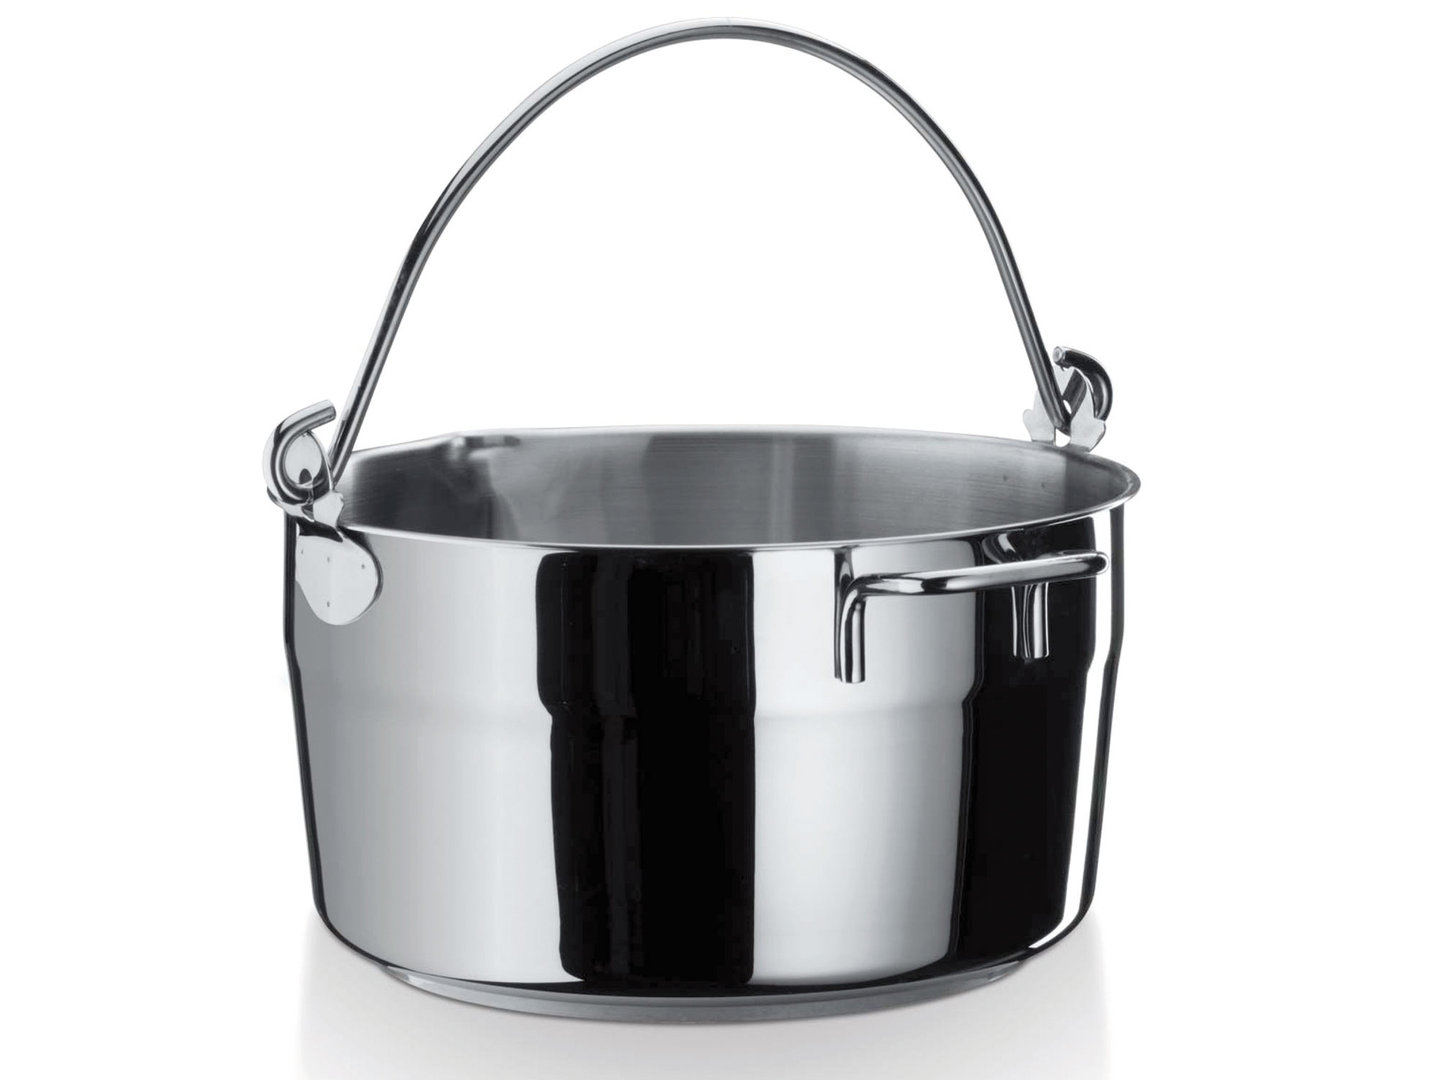 BEKA jam pan SWEET JAR 30 cm stainless steel pot 10,45 liters